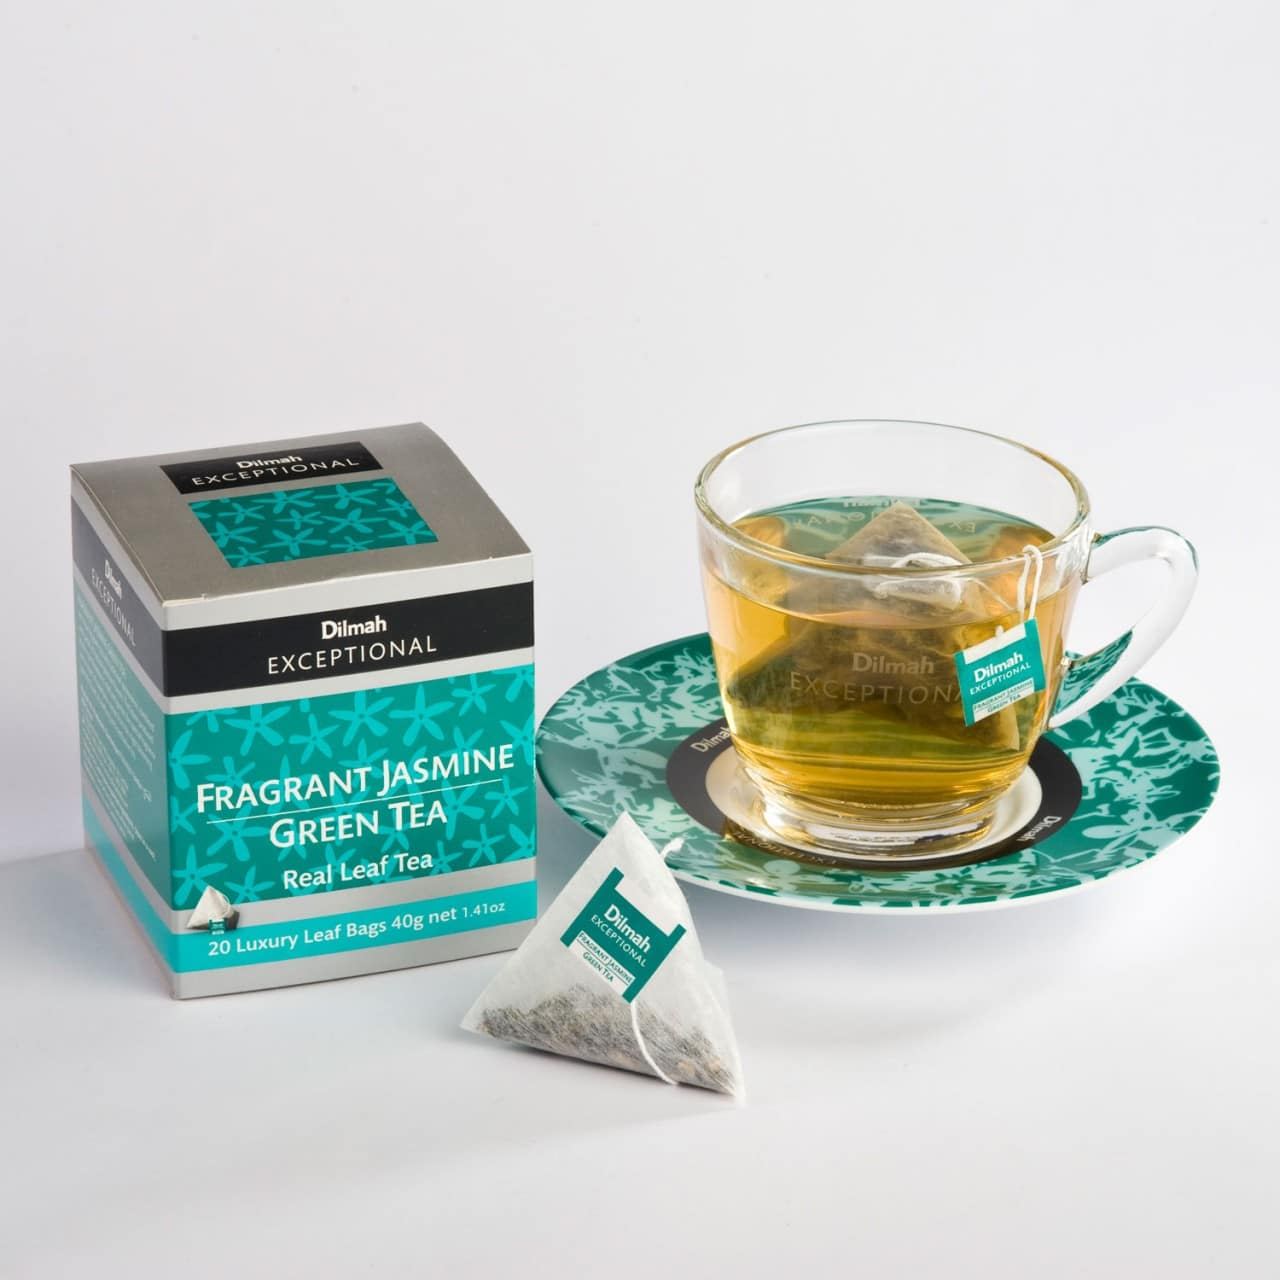 Dilmah fragrant jasmine green tea exceptional the tea journey dilmah exceptional jasmine cup izmirmasajfo Images